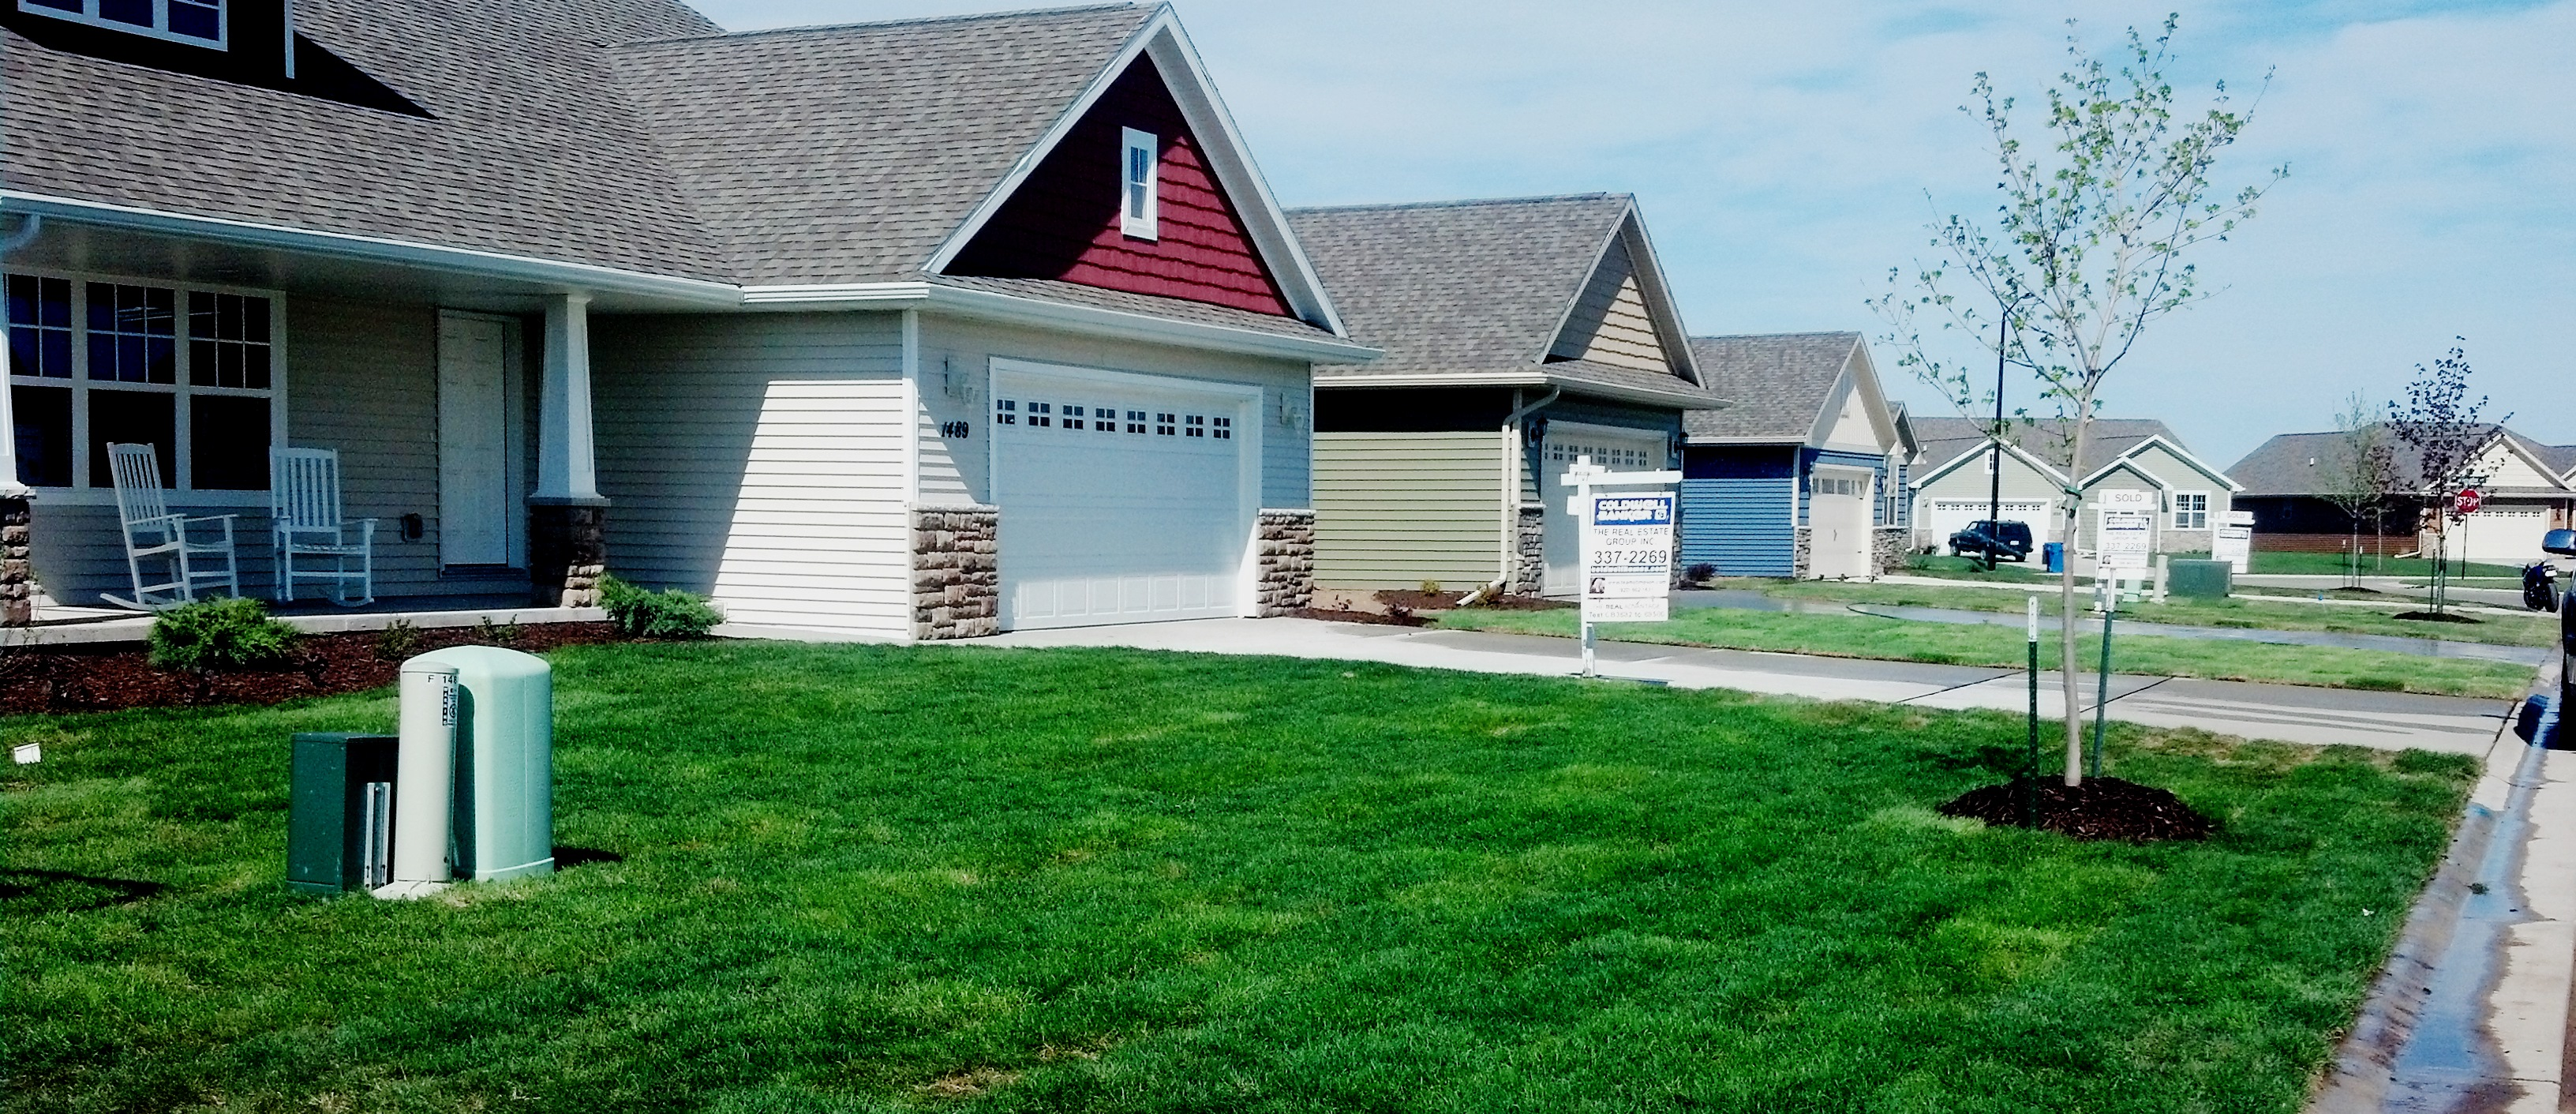 Landscaping New Homes At Tailwind Crossing In De Pere The